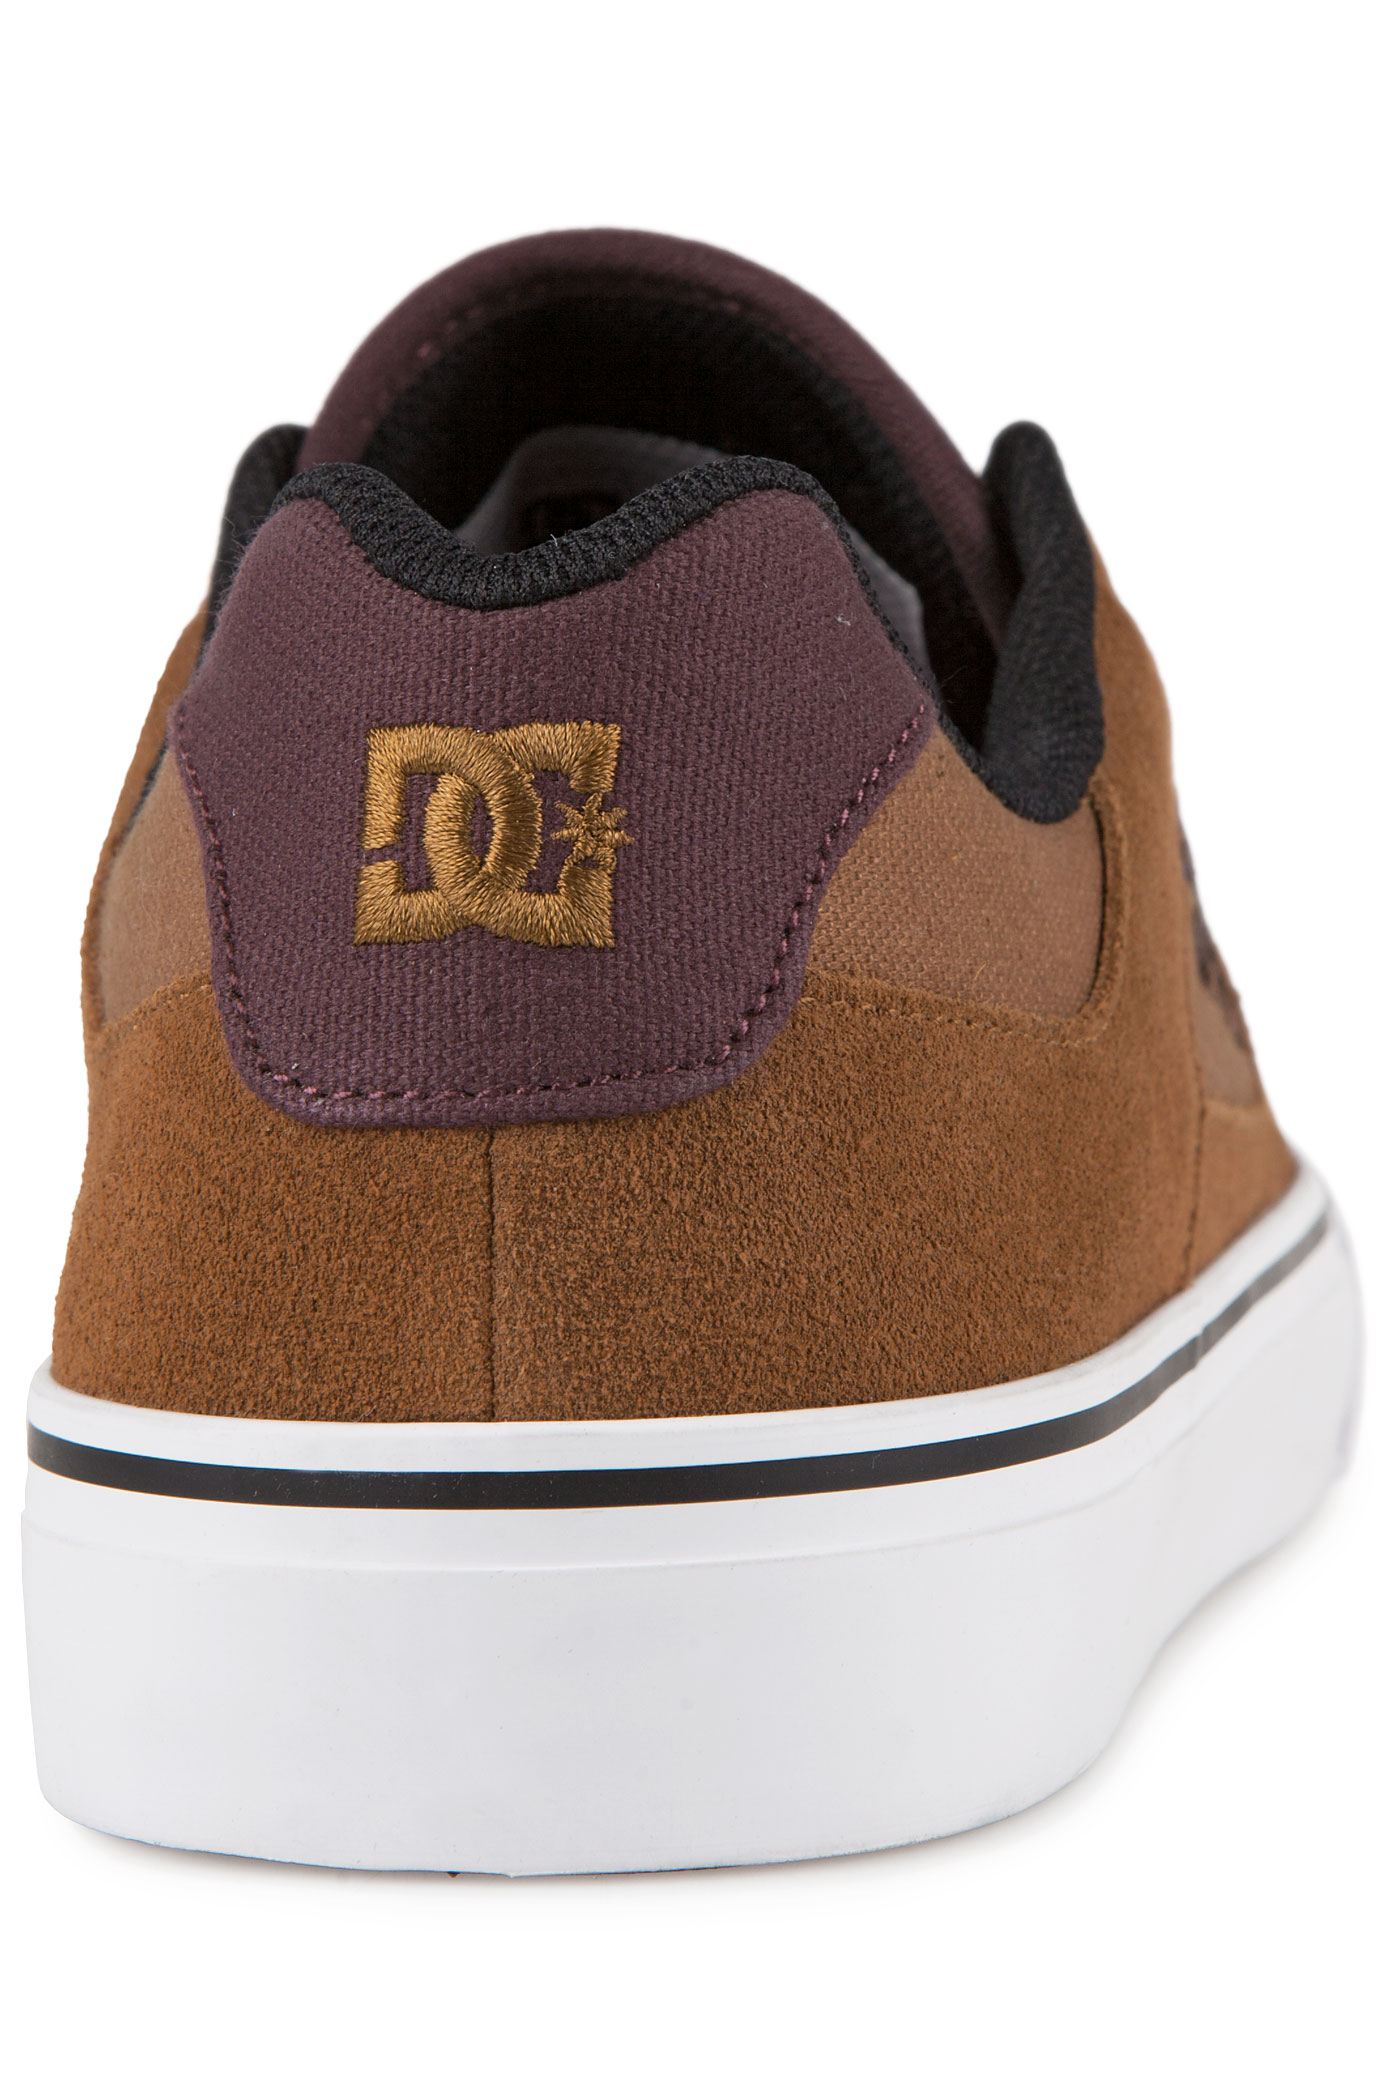 Dc Shoes Bridge Review